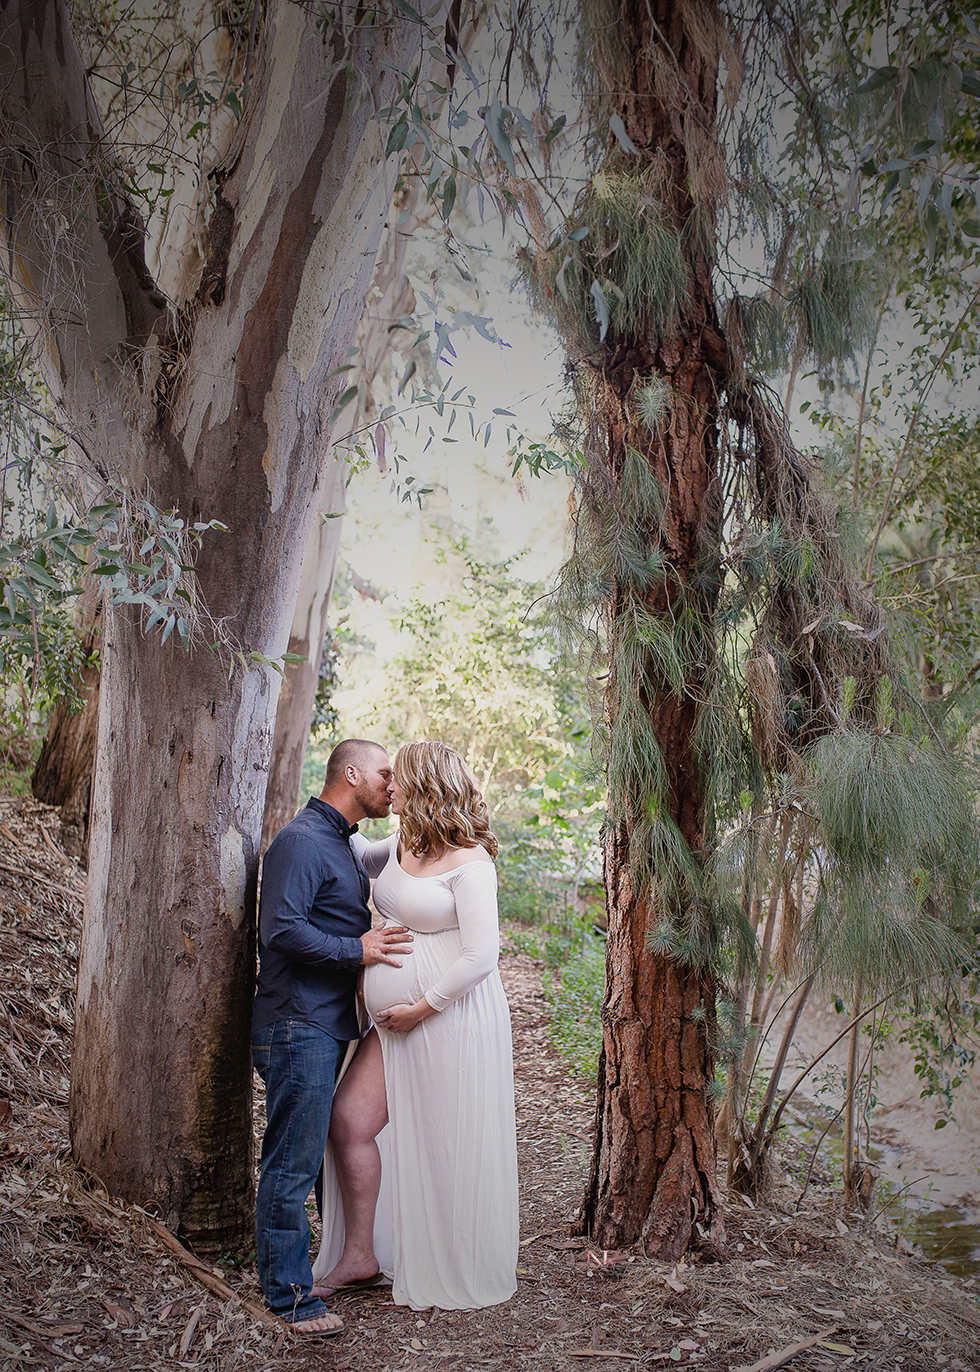 The framing trees!  The kiss!  Oh My I can see this hanging in any room!